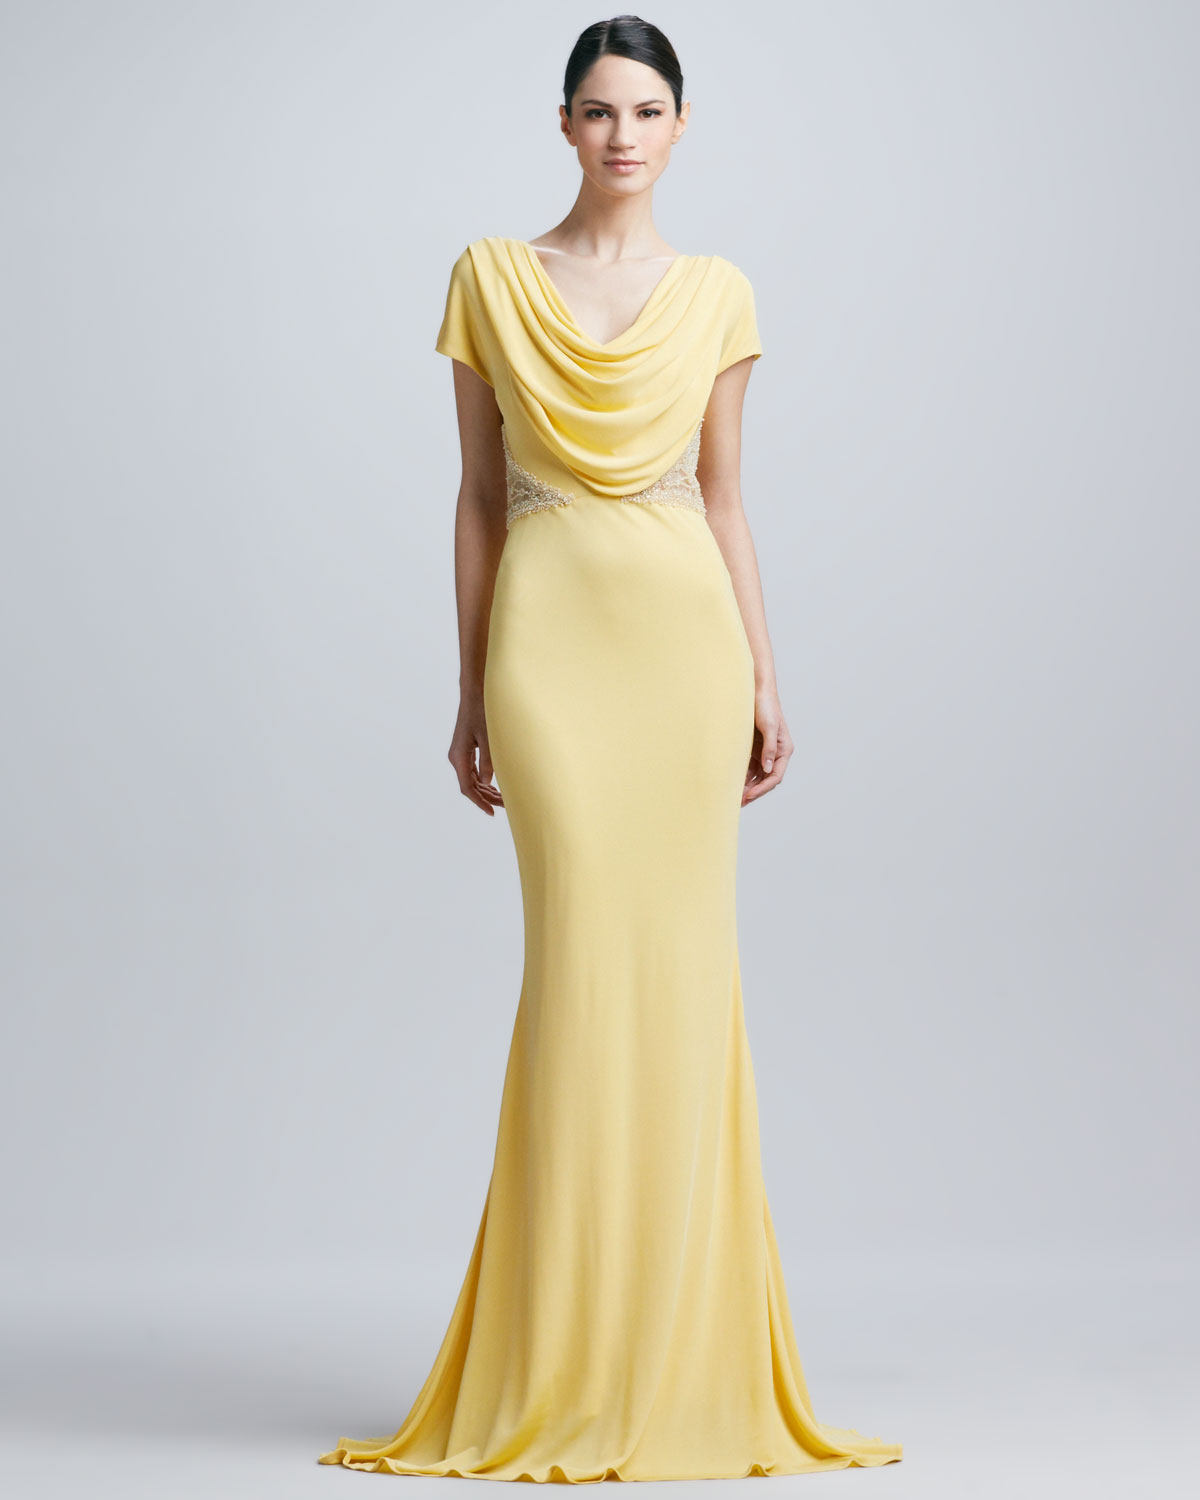 Cowl Neck Back Wedding Dresses: Badgley Mischka Cowl Neck Lace Trim Gown In Yellow